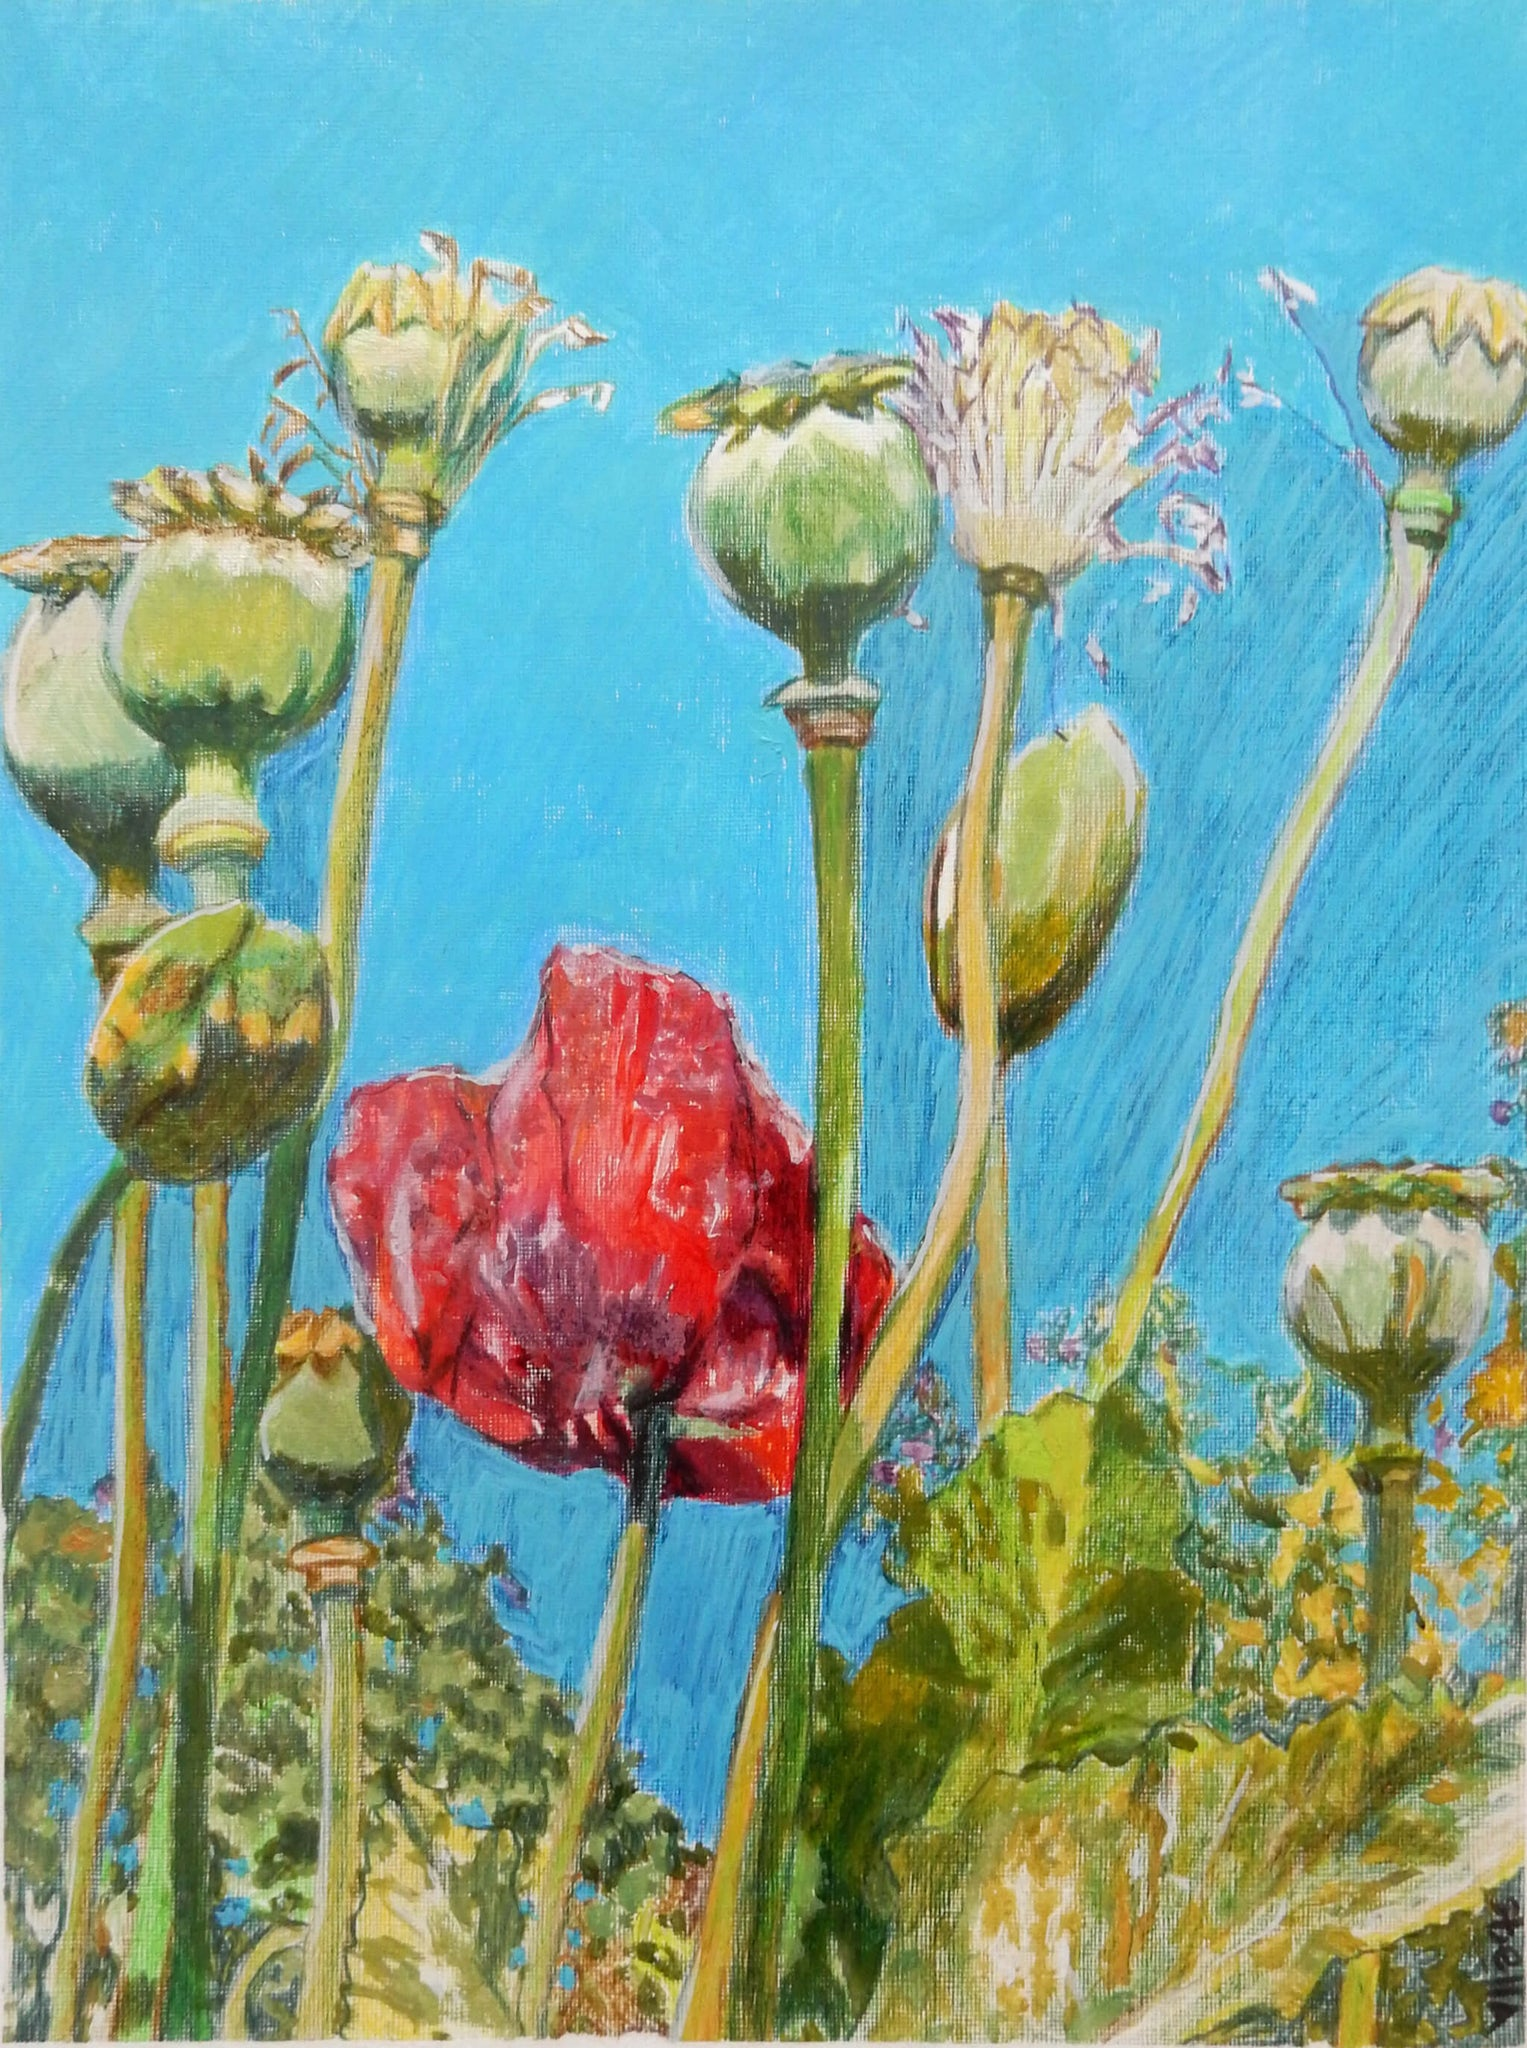 Top of the poppies oil on canvas floral artwork on paper by Stella Tooth